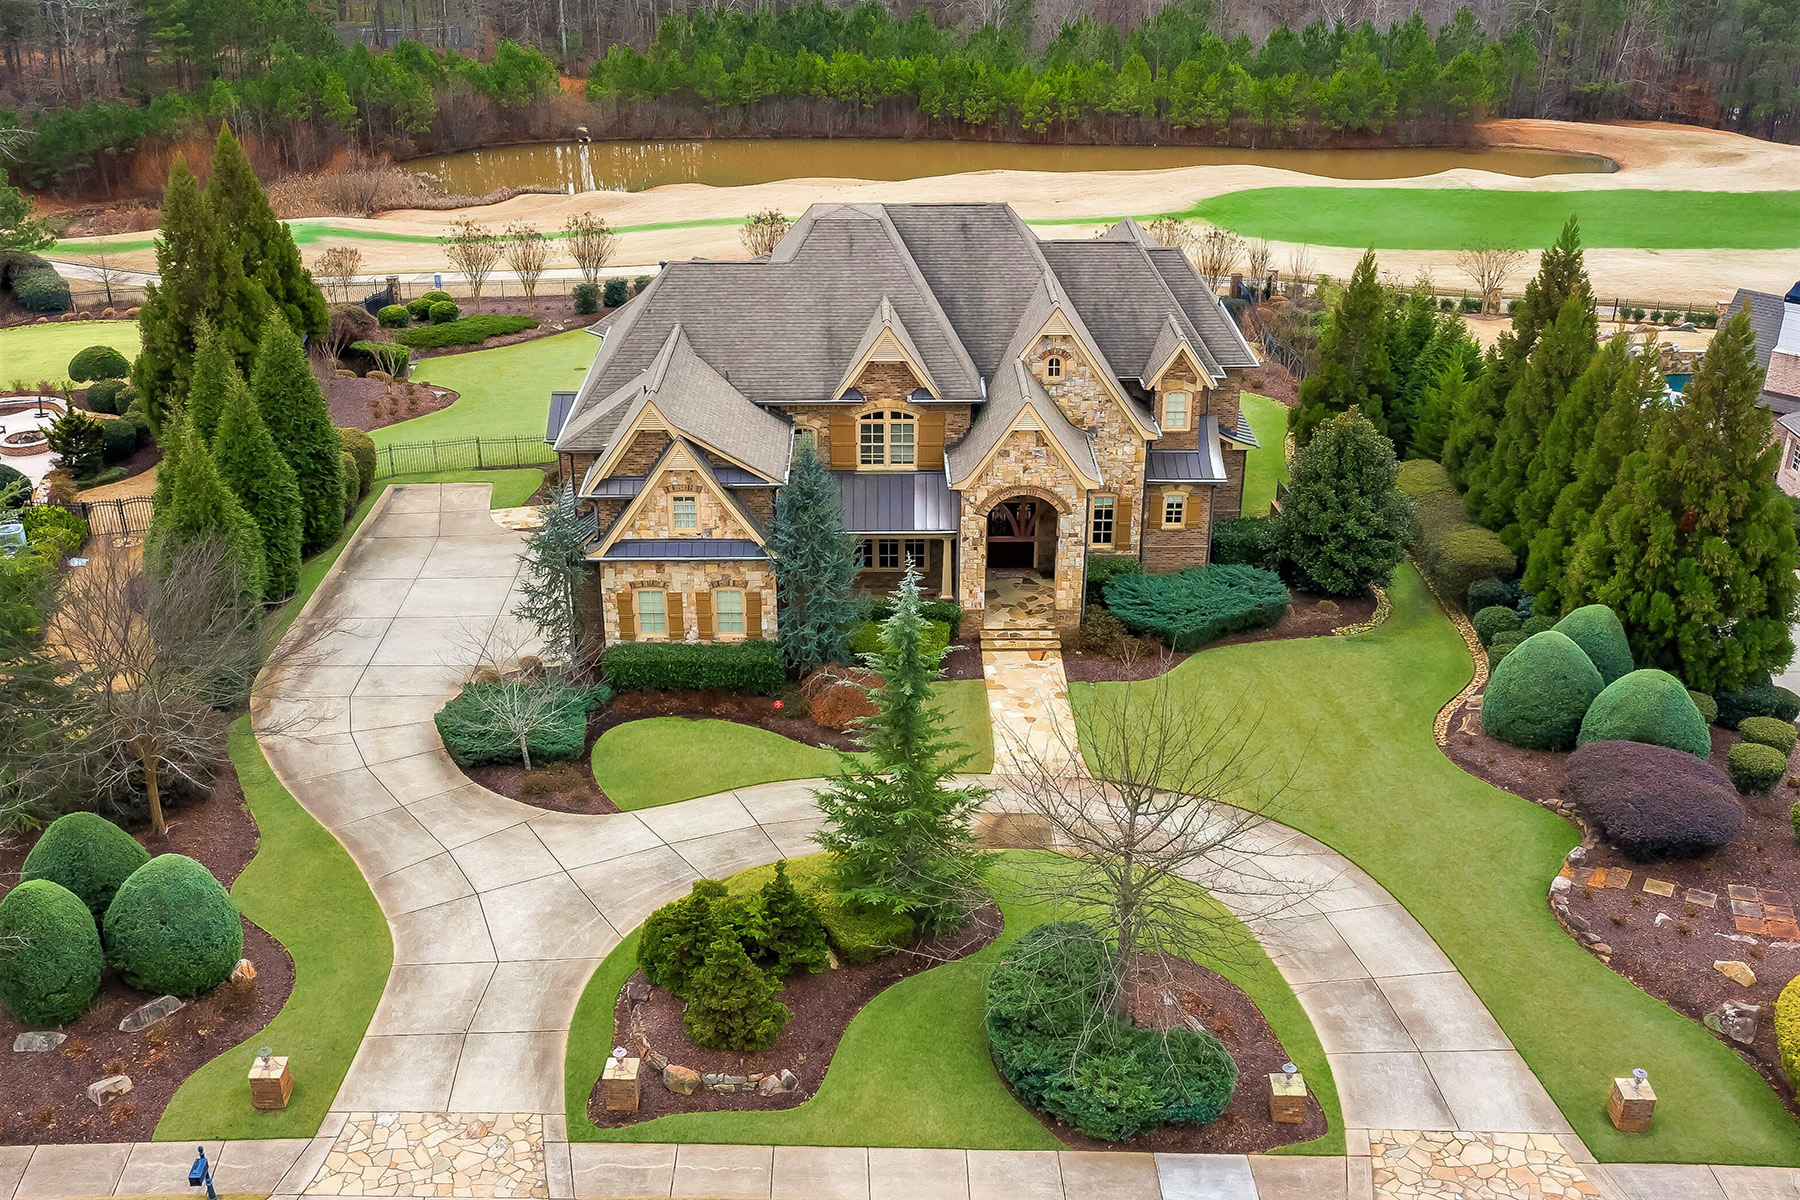 Single Family Homes for Active at Detailed Golf Lot Home In The Manor With Panoramic Fairway View 3107 Watsons Bend Milton, Georgia 30004 United States